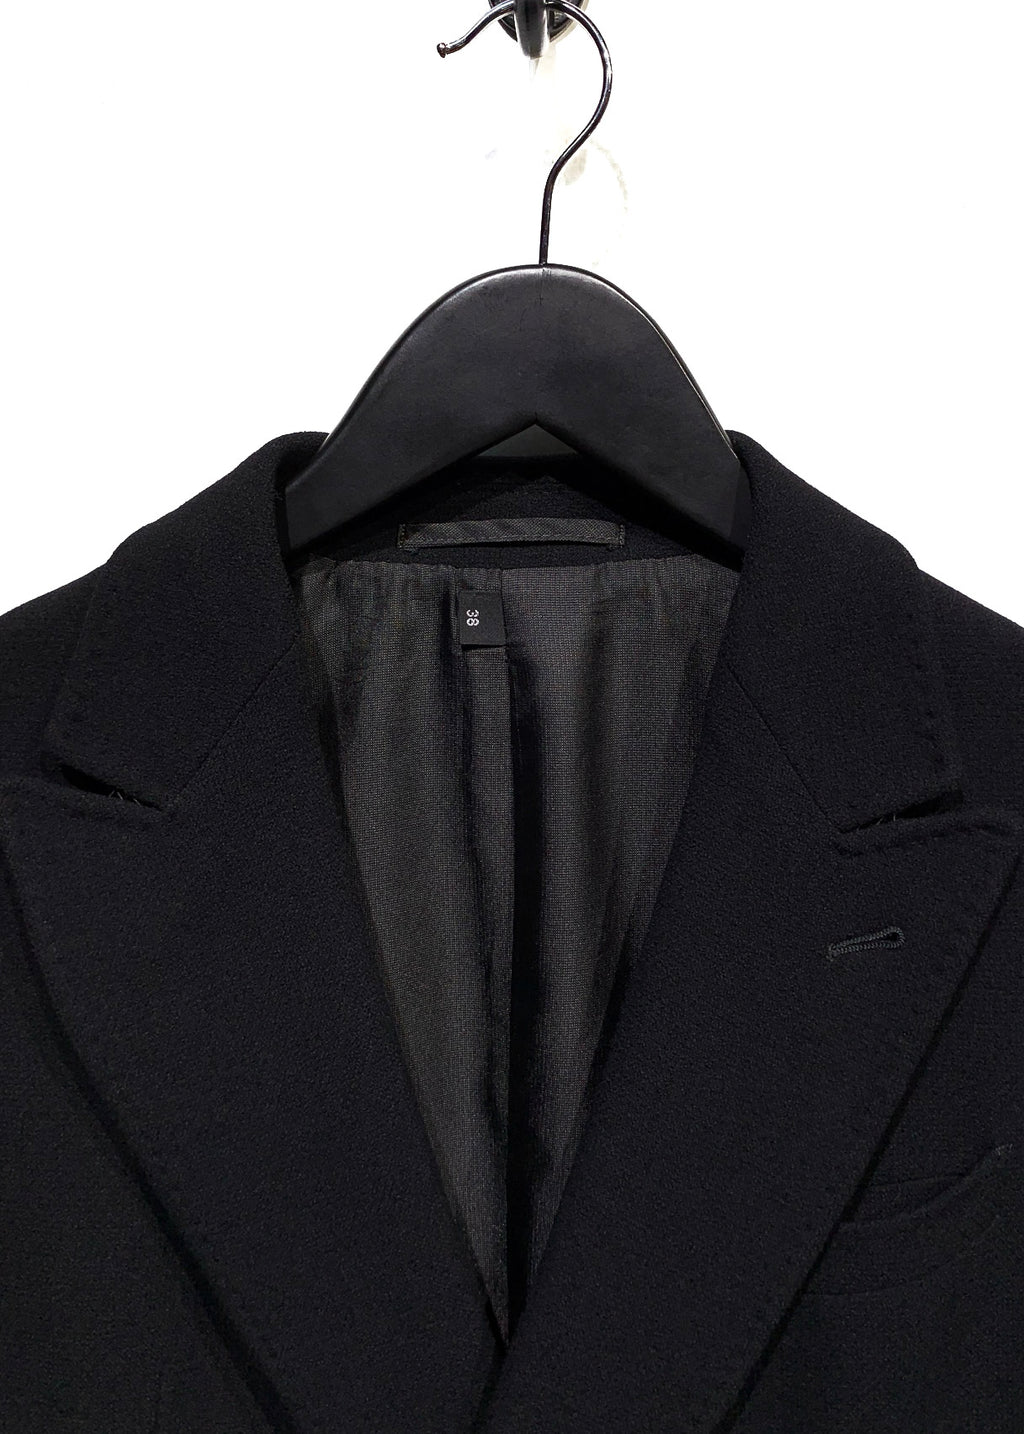 Armani Collezioni Black Wool Double Breasted Blazer